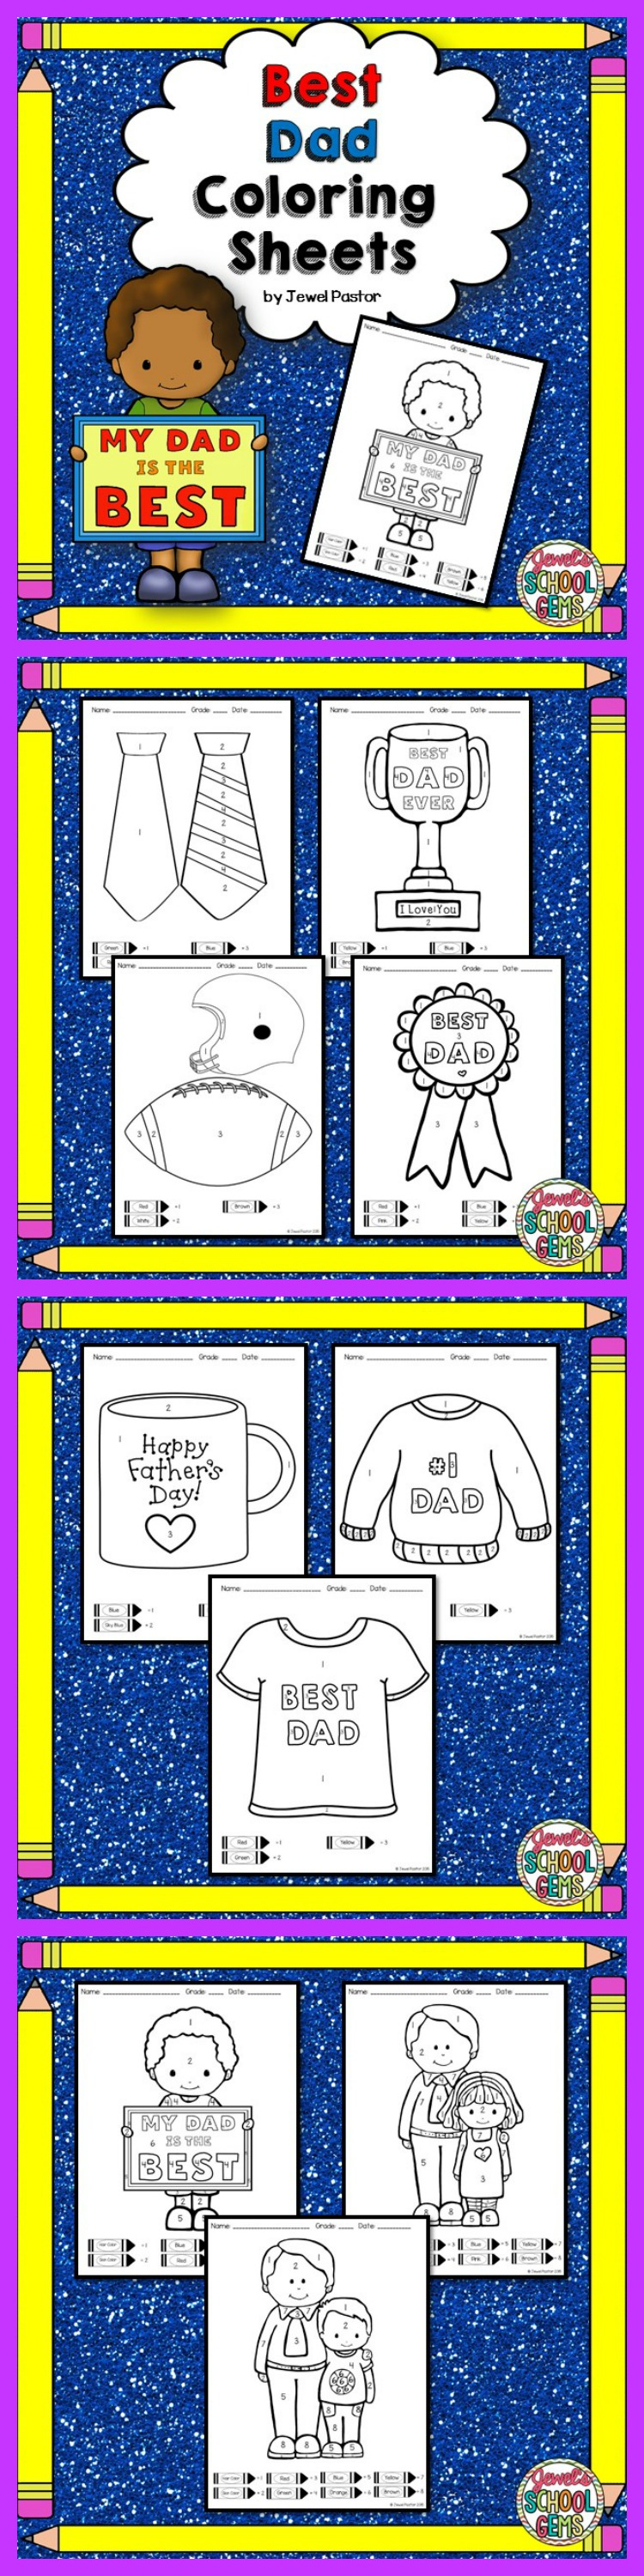 "Fathers Day : Fathers Day Coloring Sheets |  ""Best Dad Coloring Sheets"" is the perfect activity for your students this Father's Day. Just print the sheets and you are ready to go! Students color the picture through the key given at the bottom of each sheet."